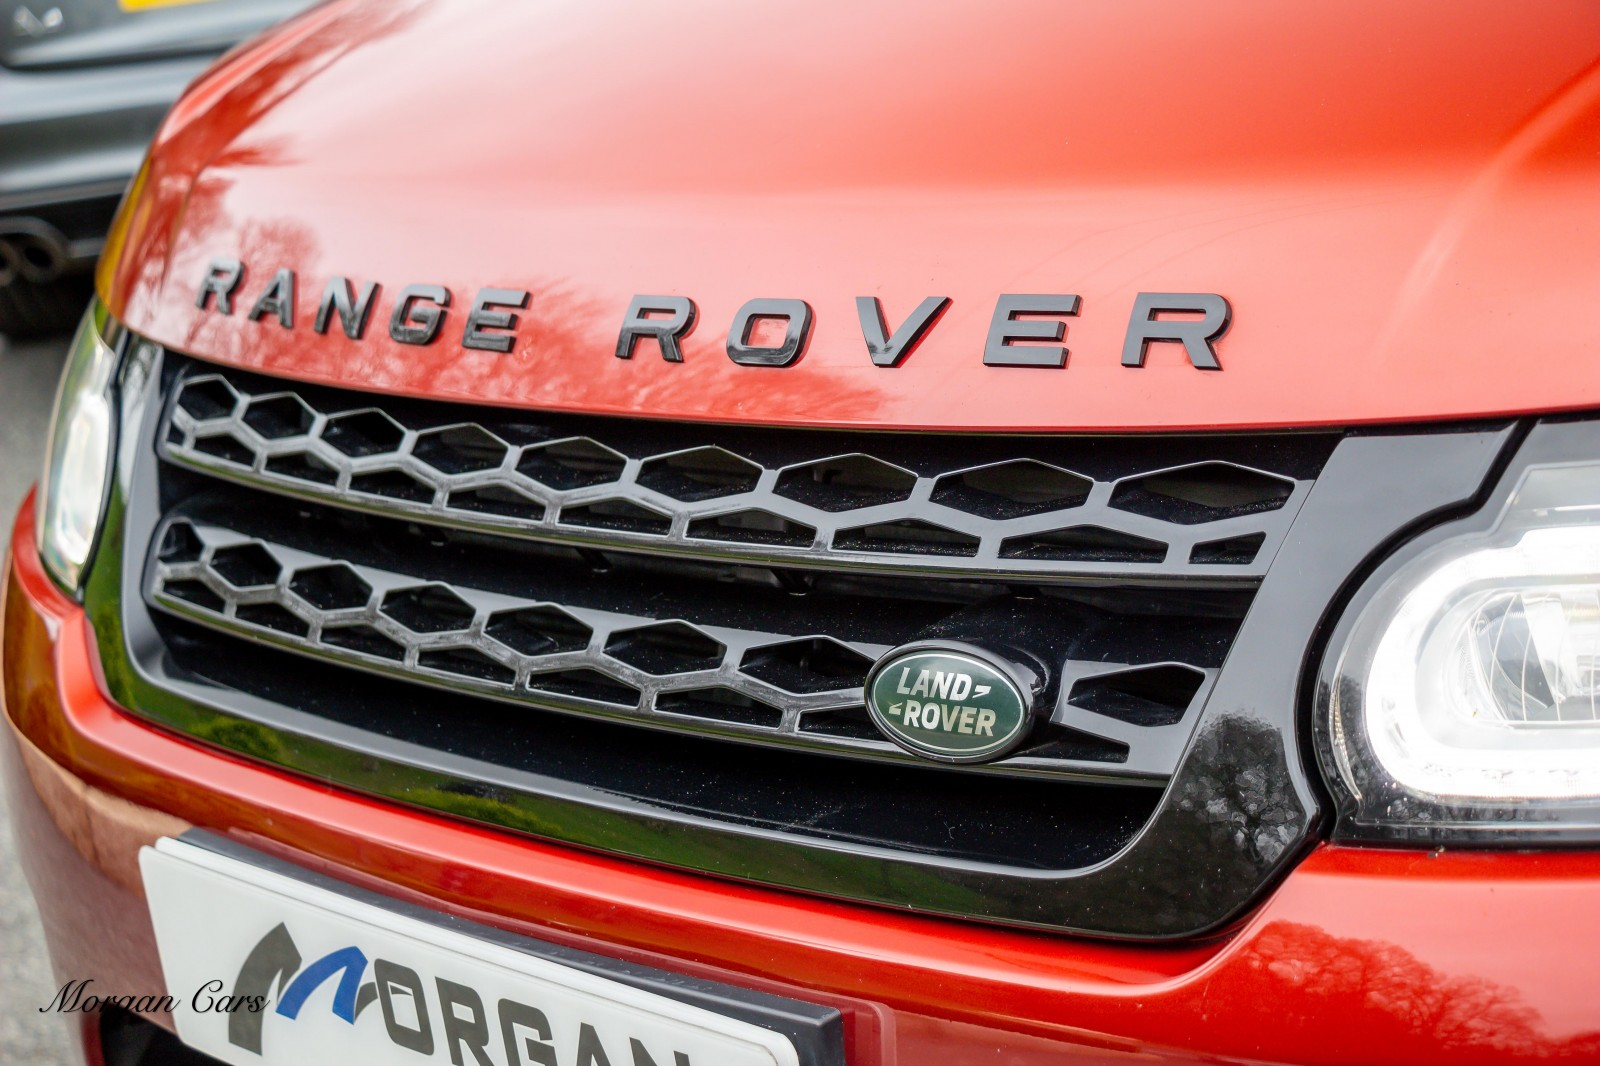 2014 Land Rover Range Rover Sport 3.0 SDV6 HSE DYNAMIC Diesel Automatic – Morgan Cars 9 Mound Road, Warrenpoint, Newry BT34 3LW, UK full